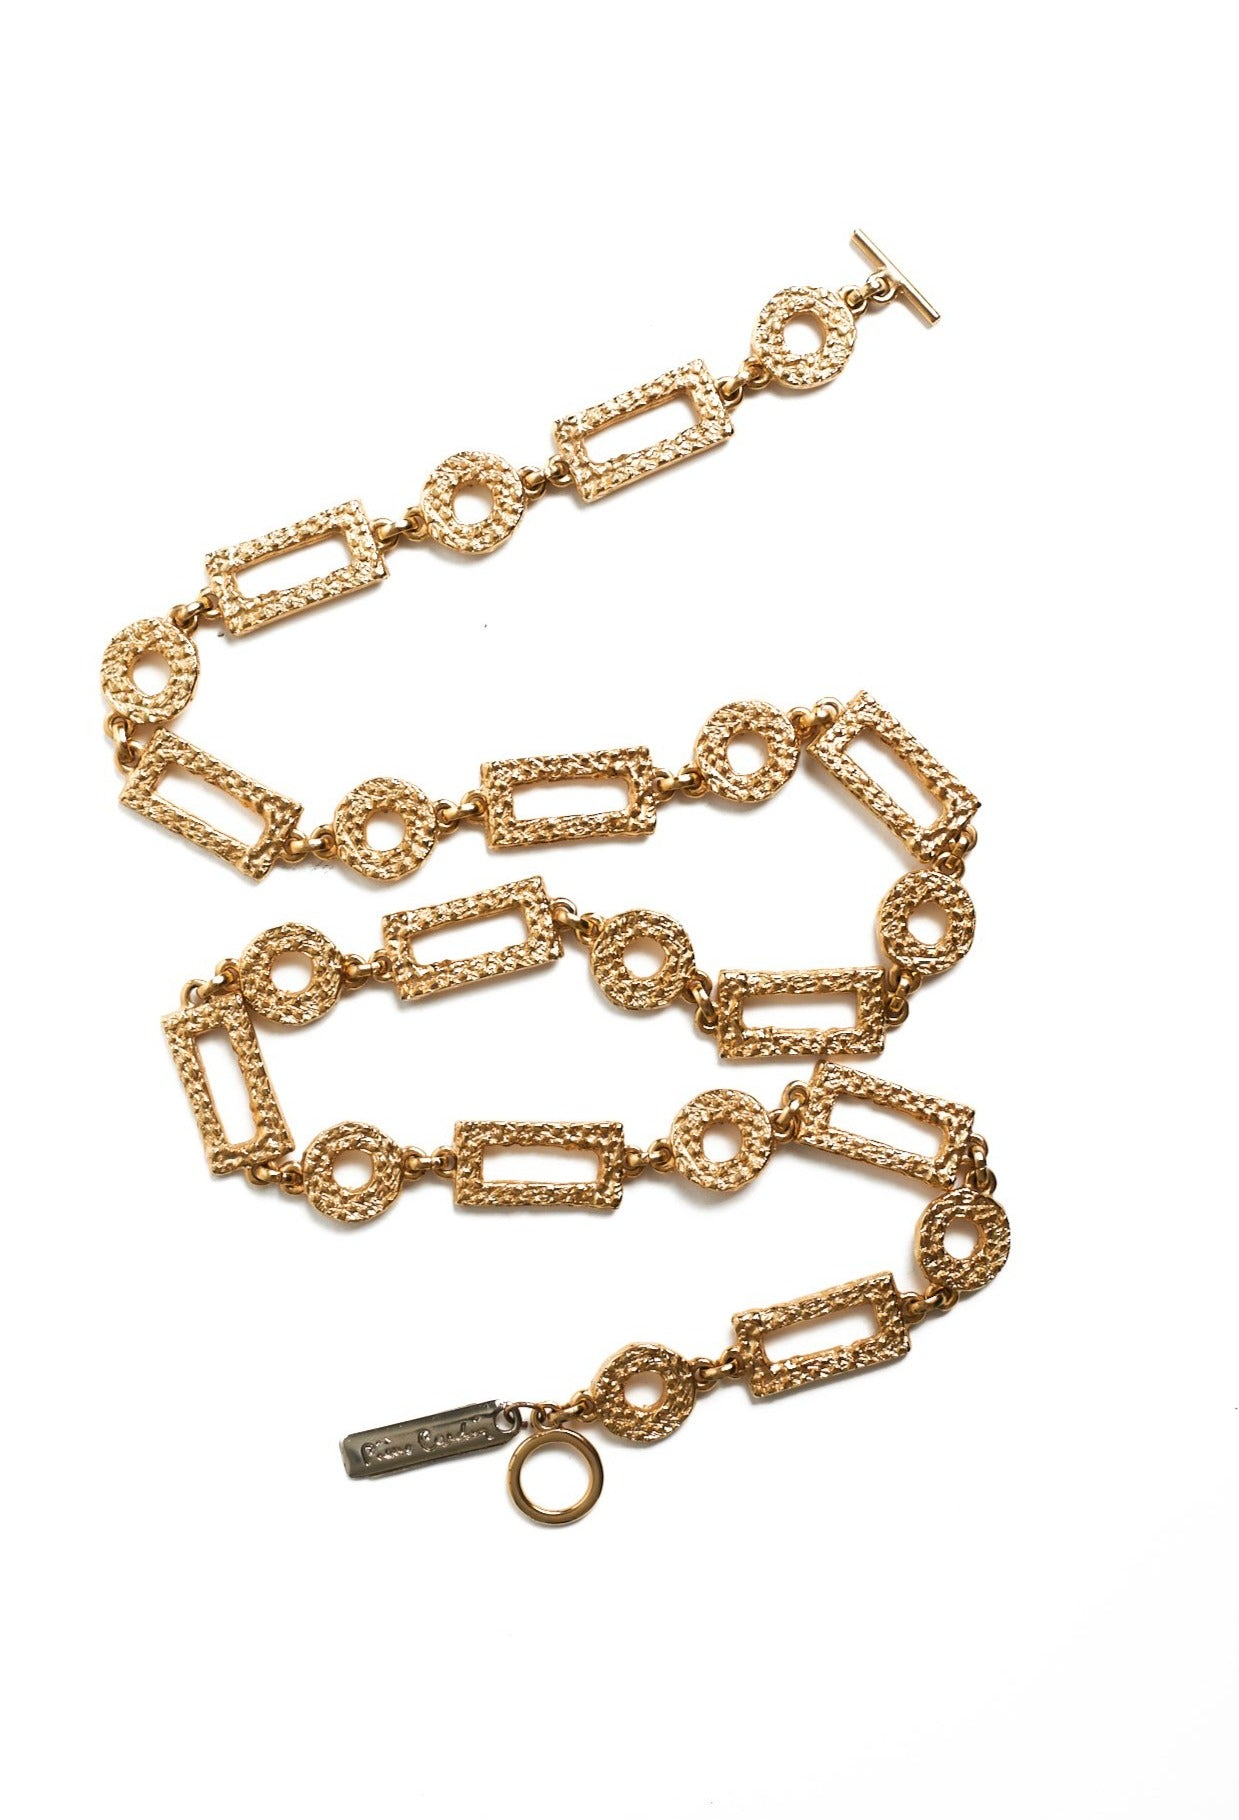 Pierre Cardin <br> 70's/80's gold plated chain link necklace/belt